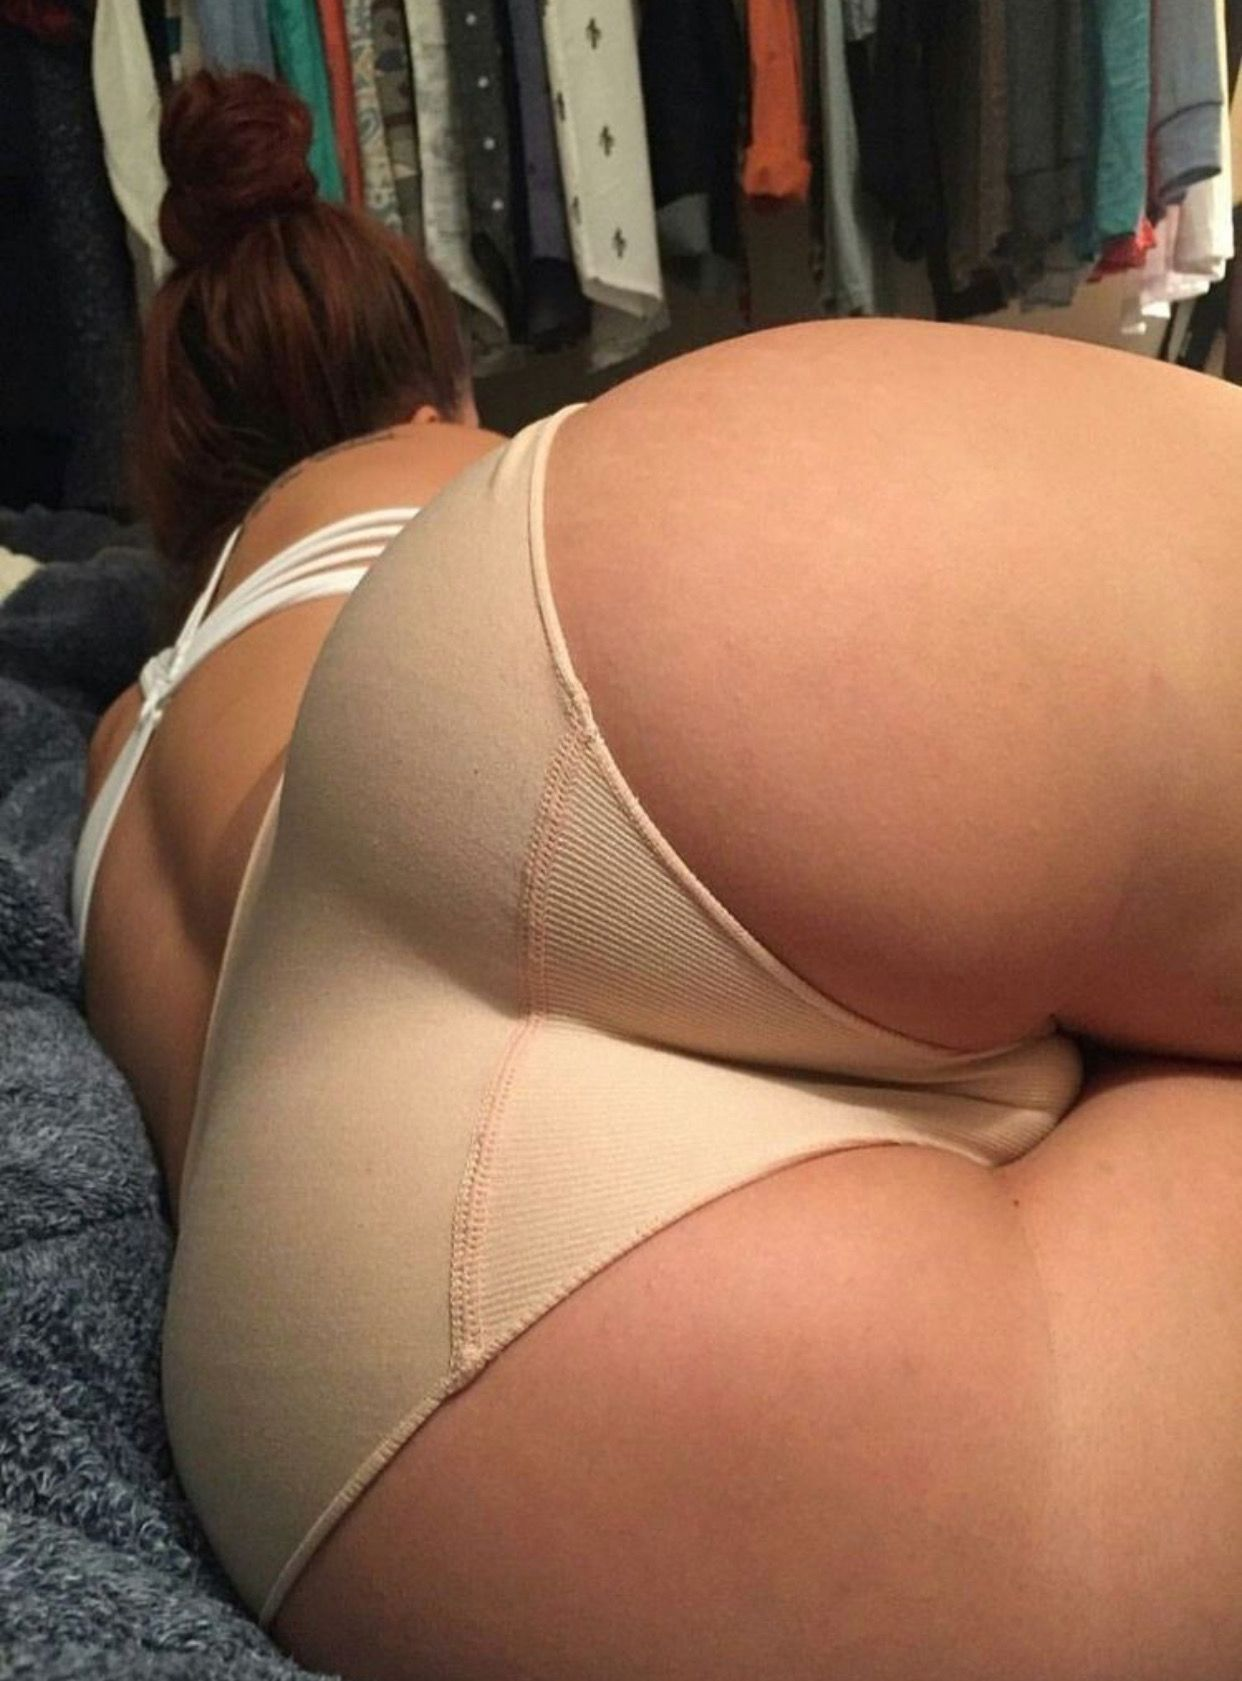 Babe with sexy thicc juicy ass